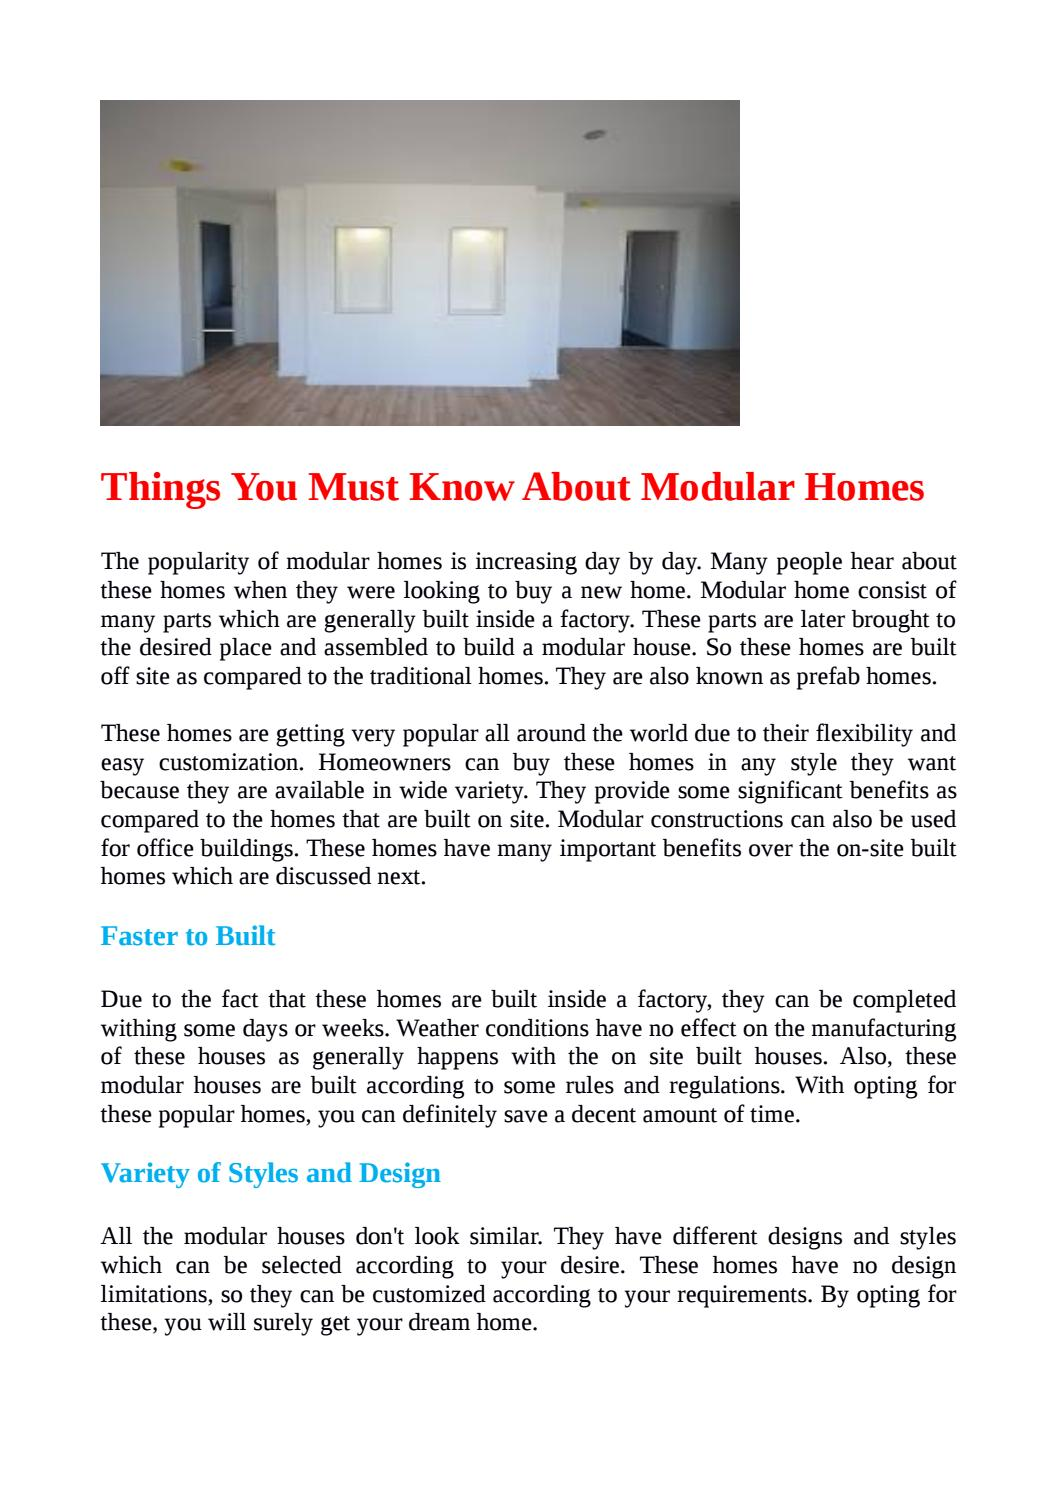 Off Site Built Homes Things you must know about modular homes by snowgumhomes - issuu